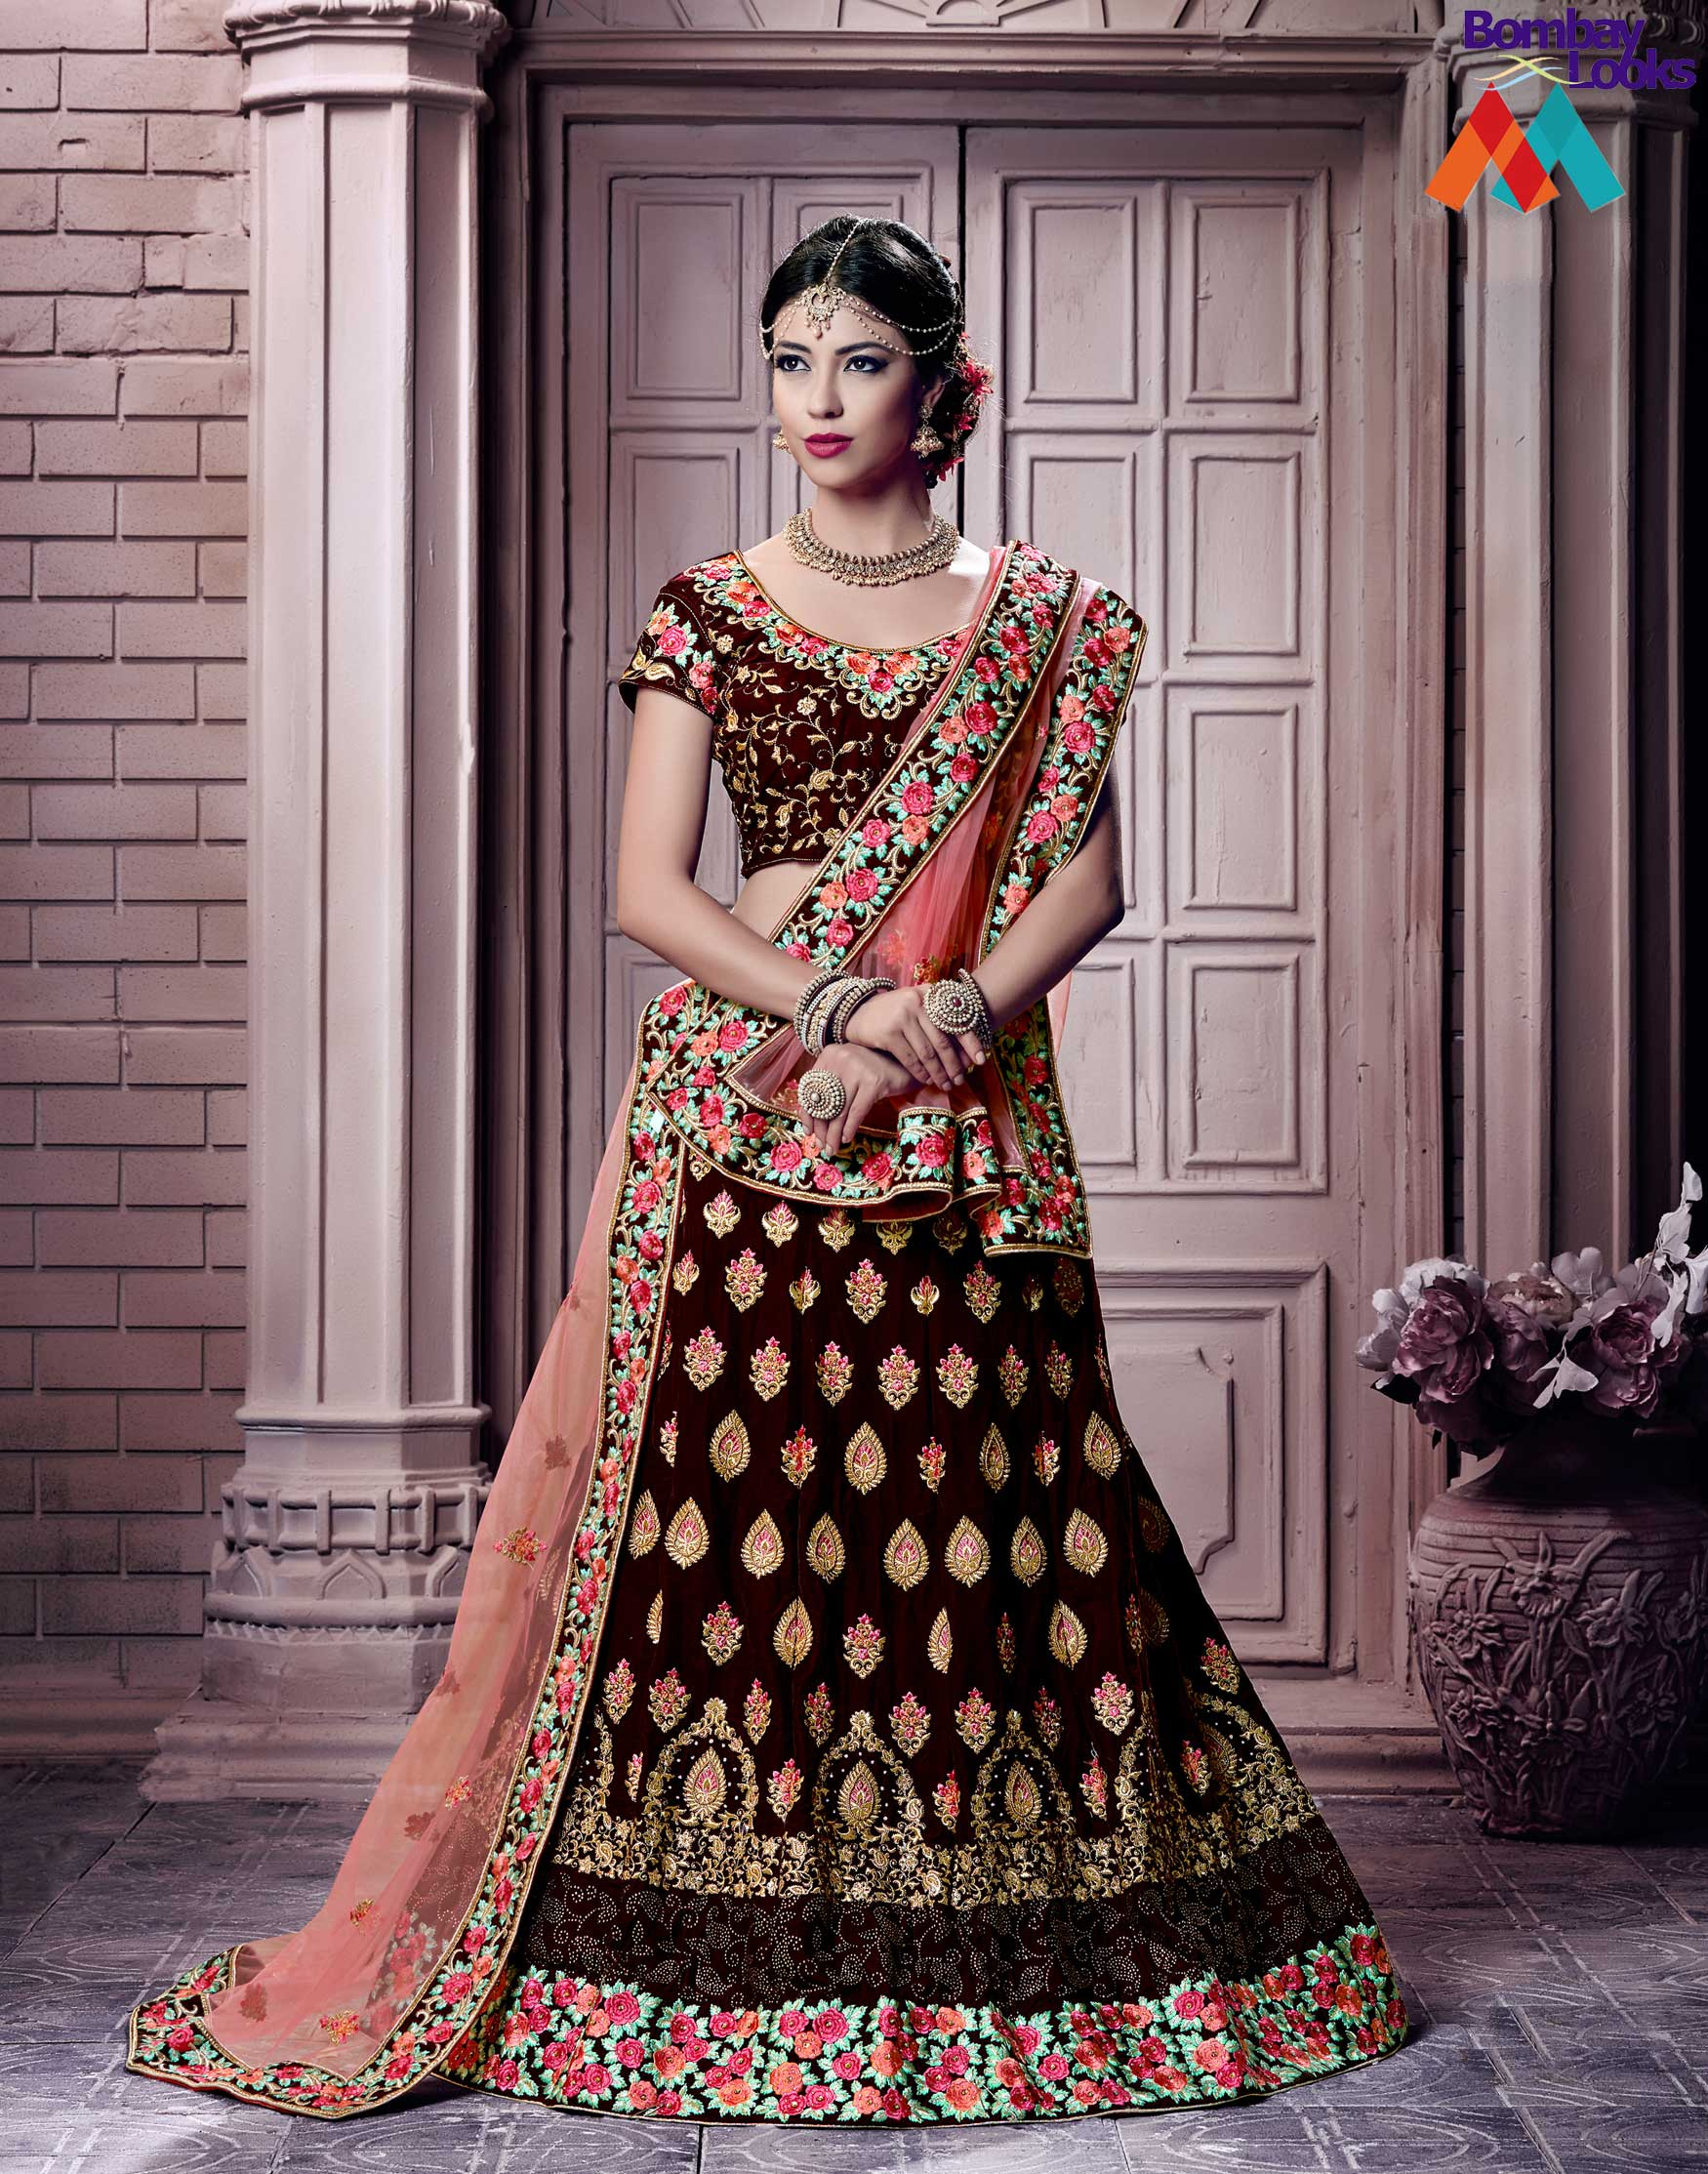 Velvet Lehenga choli in maroon colour